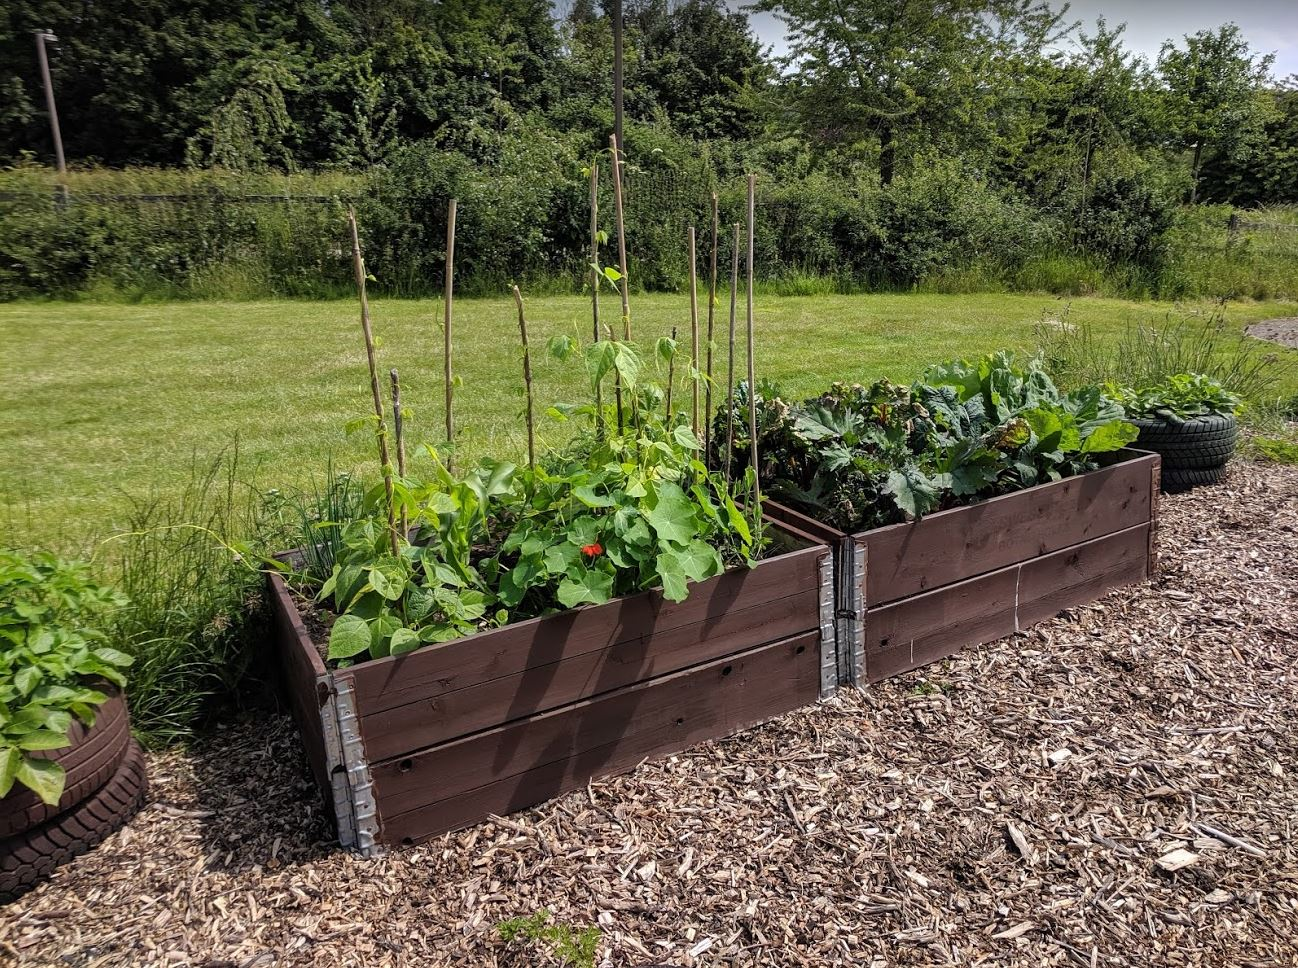 Raised beds looking full of peas, beans and brassicas